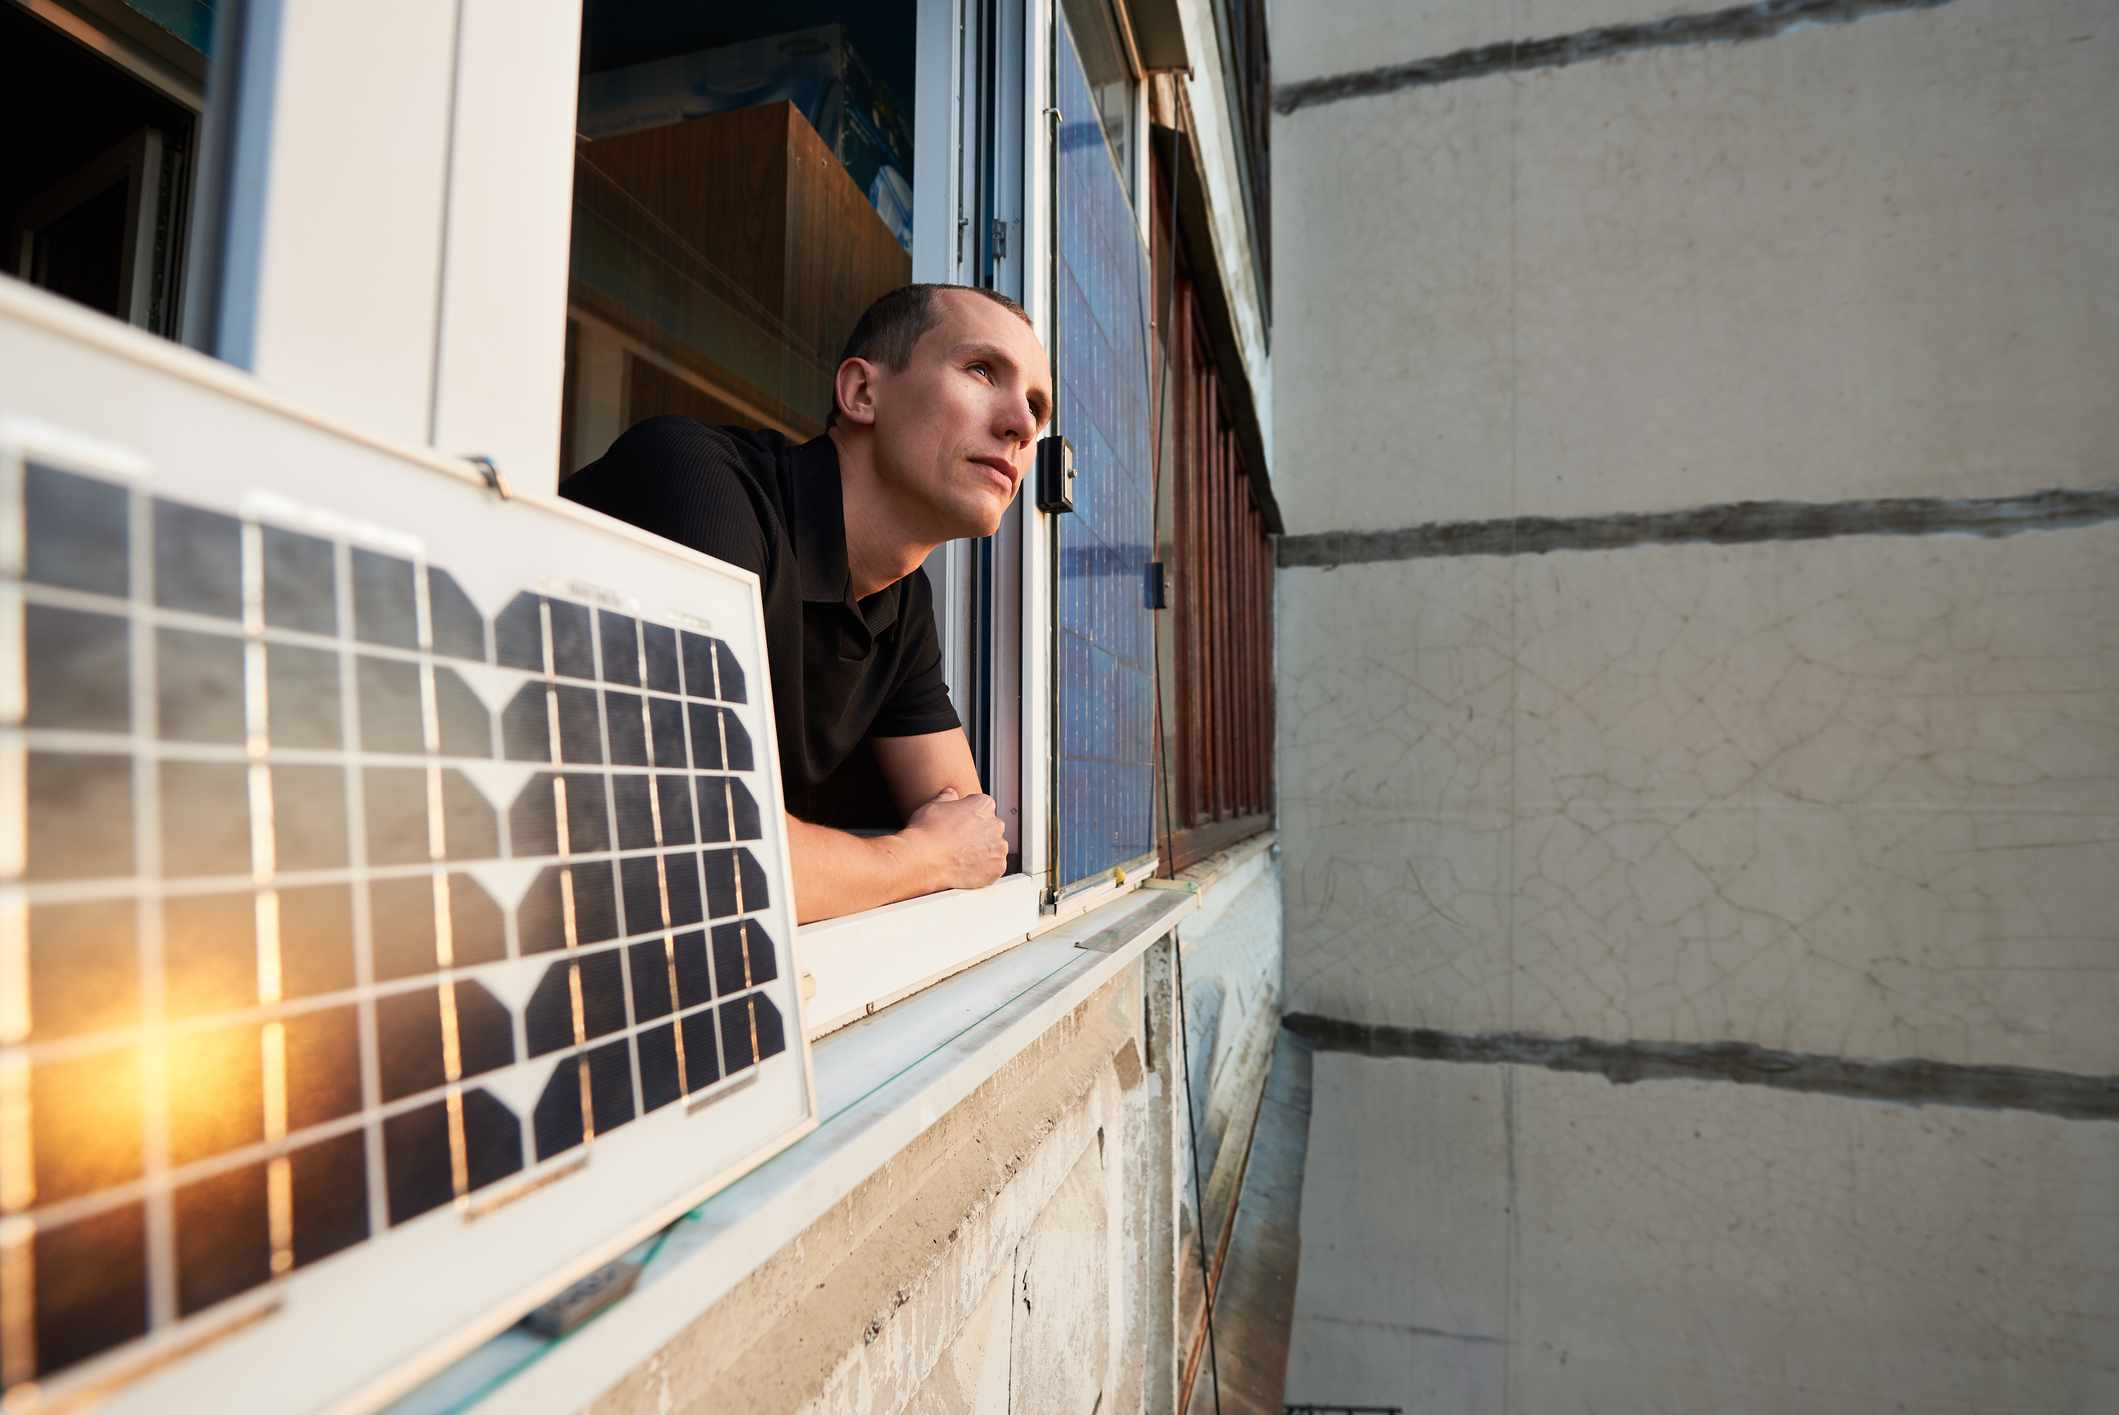 A man leans out an apartment window next to a portable solar panel attached to the window ledge; the sun's reflection is visible in the panel..